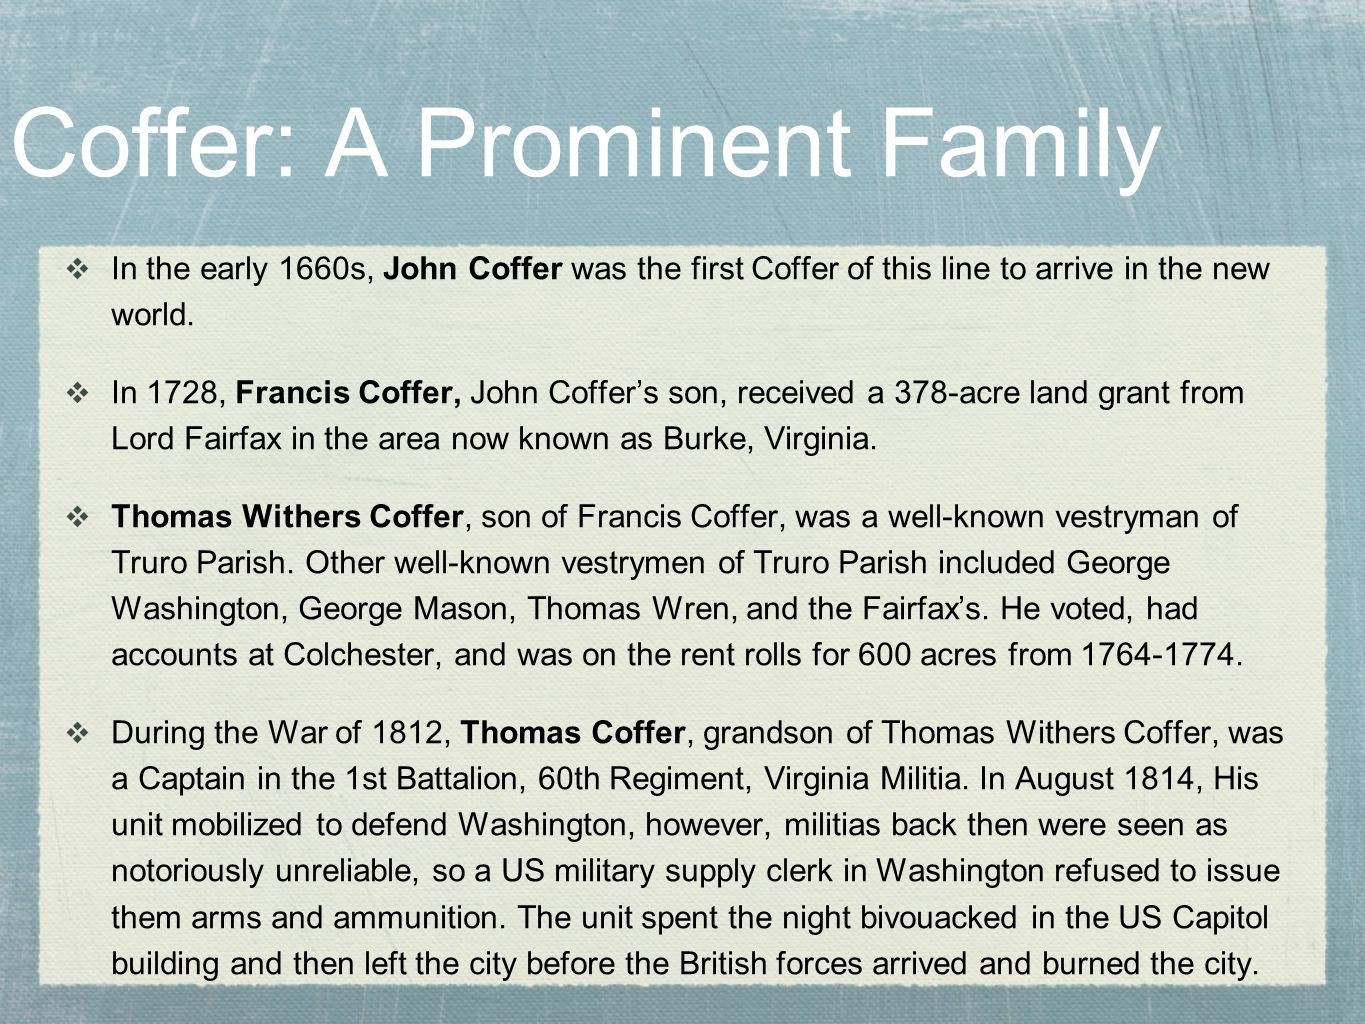 Coffer: A Prominent Family